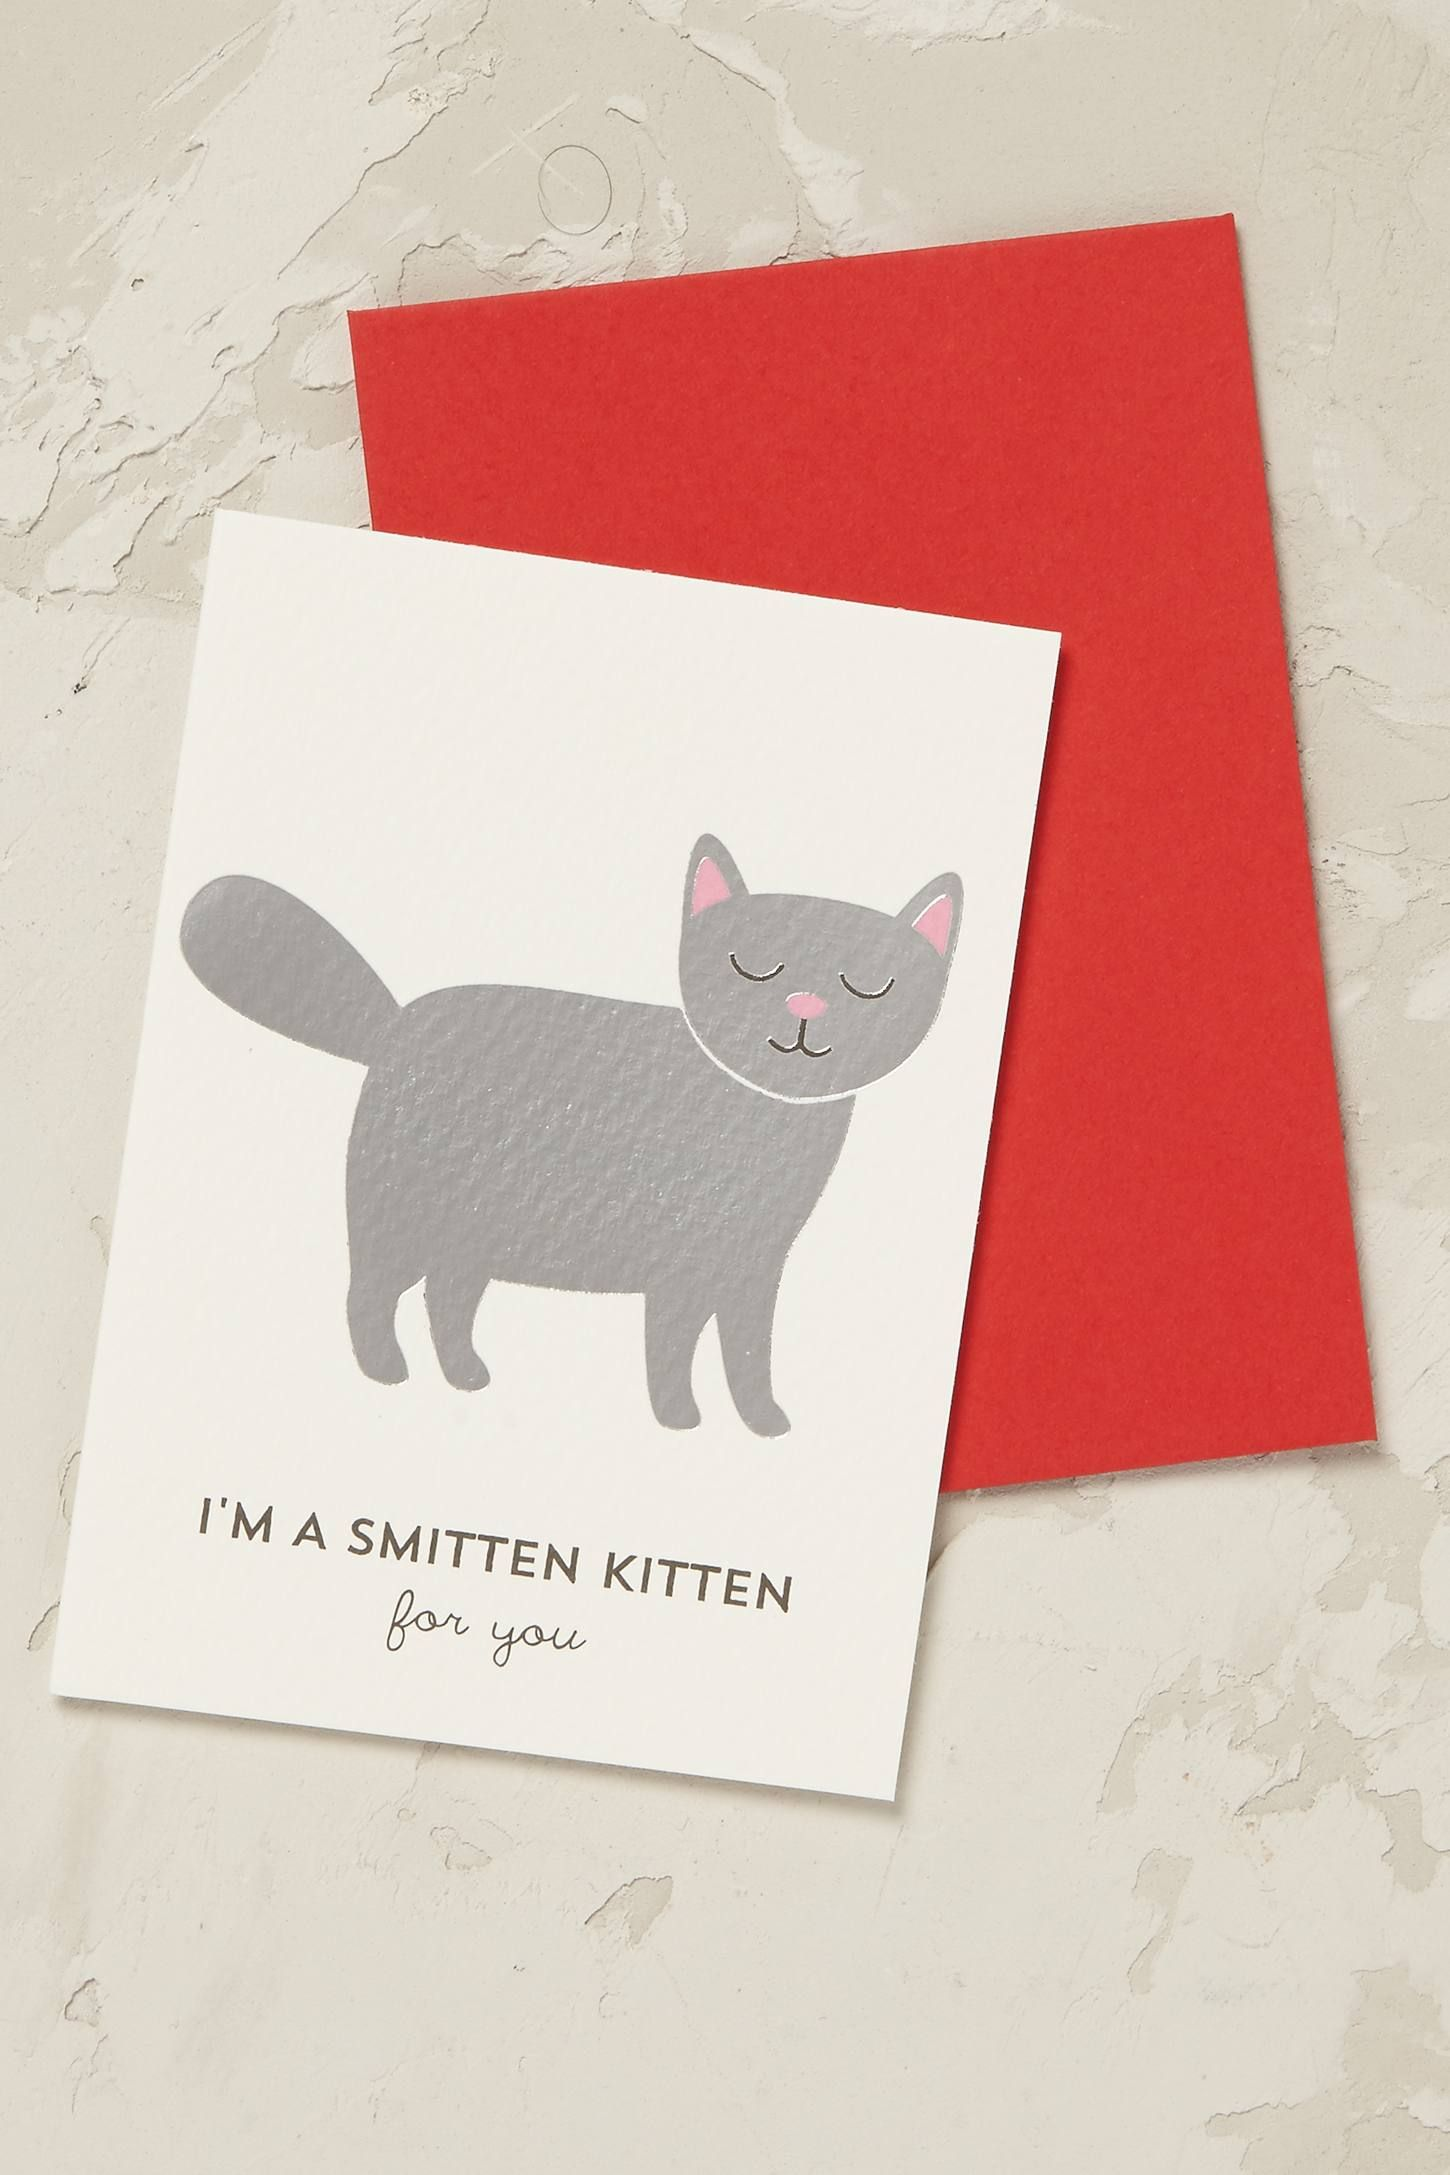 Smitten Kitten Card By Choux A La Creme Christmas Gift Shop Cards Journal Stationery